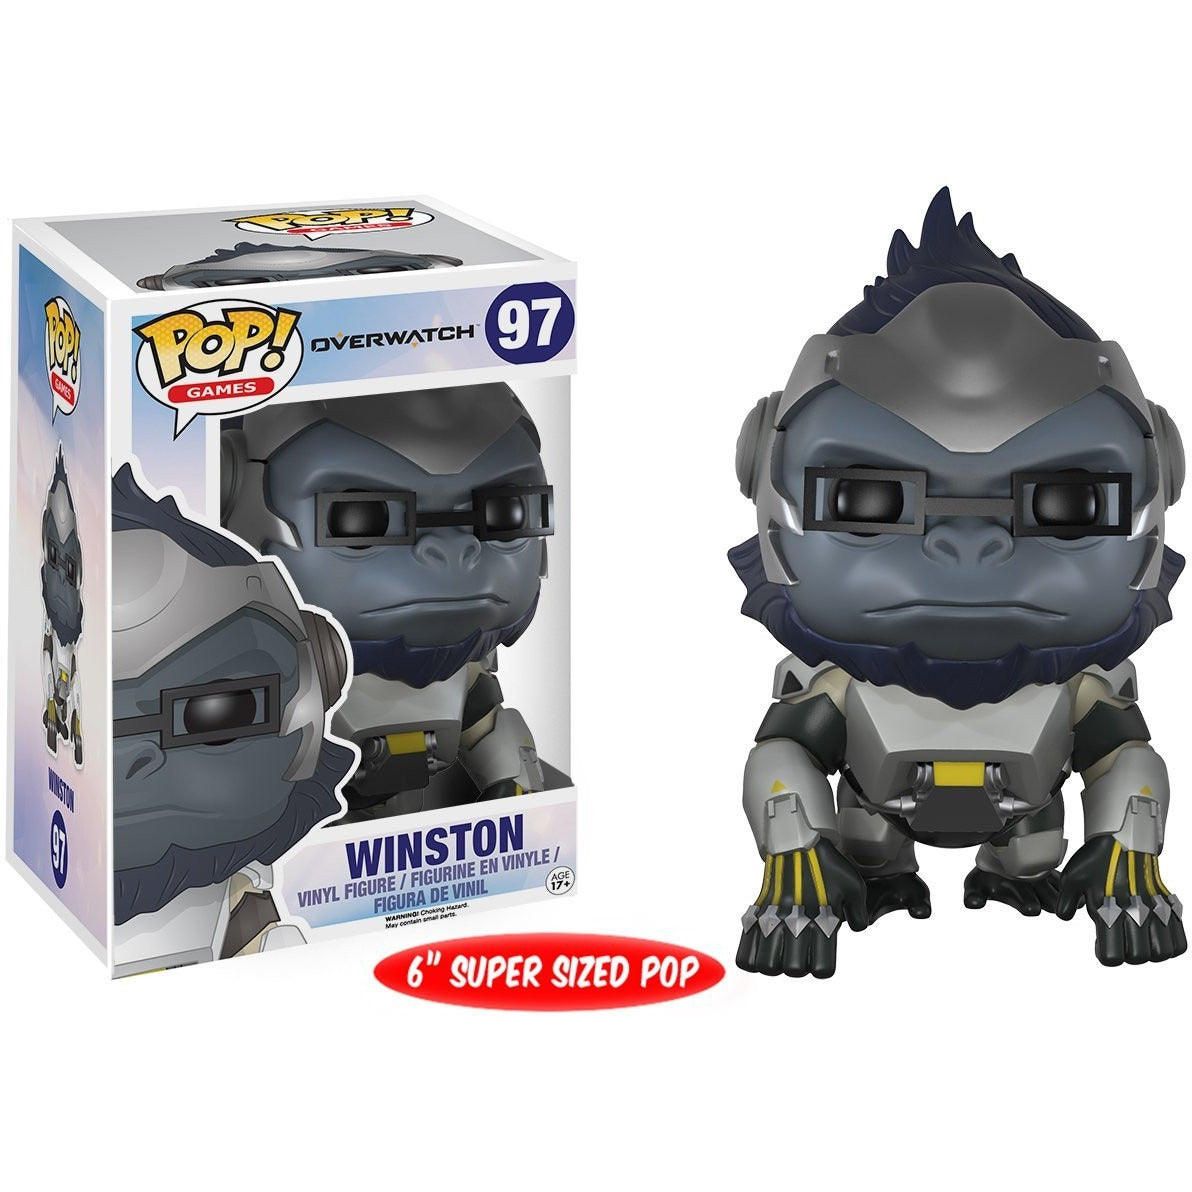 Funko Pop! Games: Overwatch Action Figure - Winston with box protector!